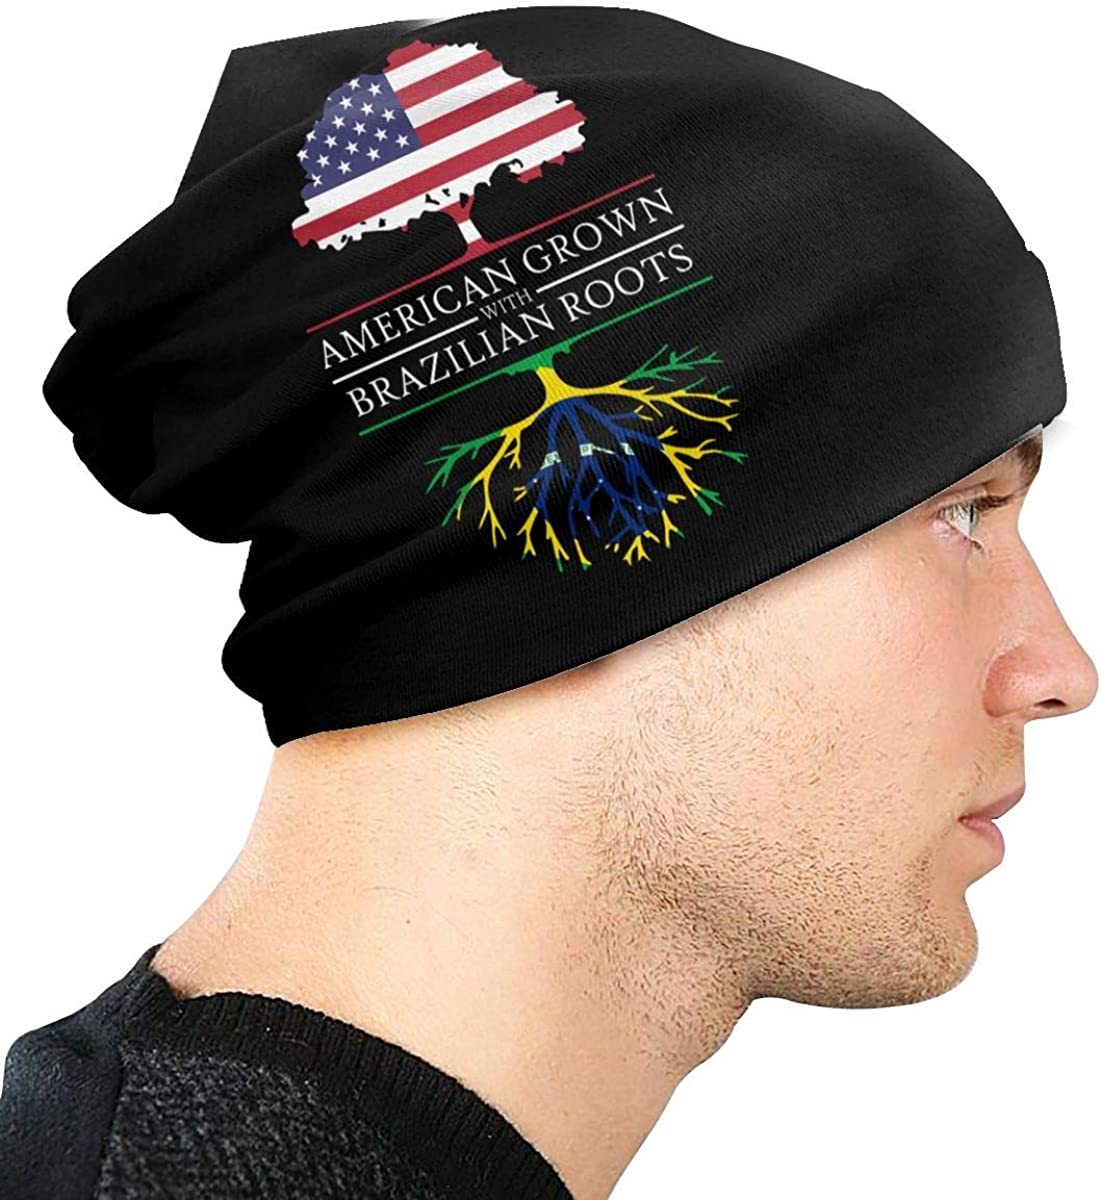 American Grown with Brazilian Roots Unisex Solid Color Beanie Hat Thin Stretchy /& Soft Winter Cap